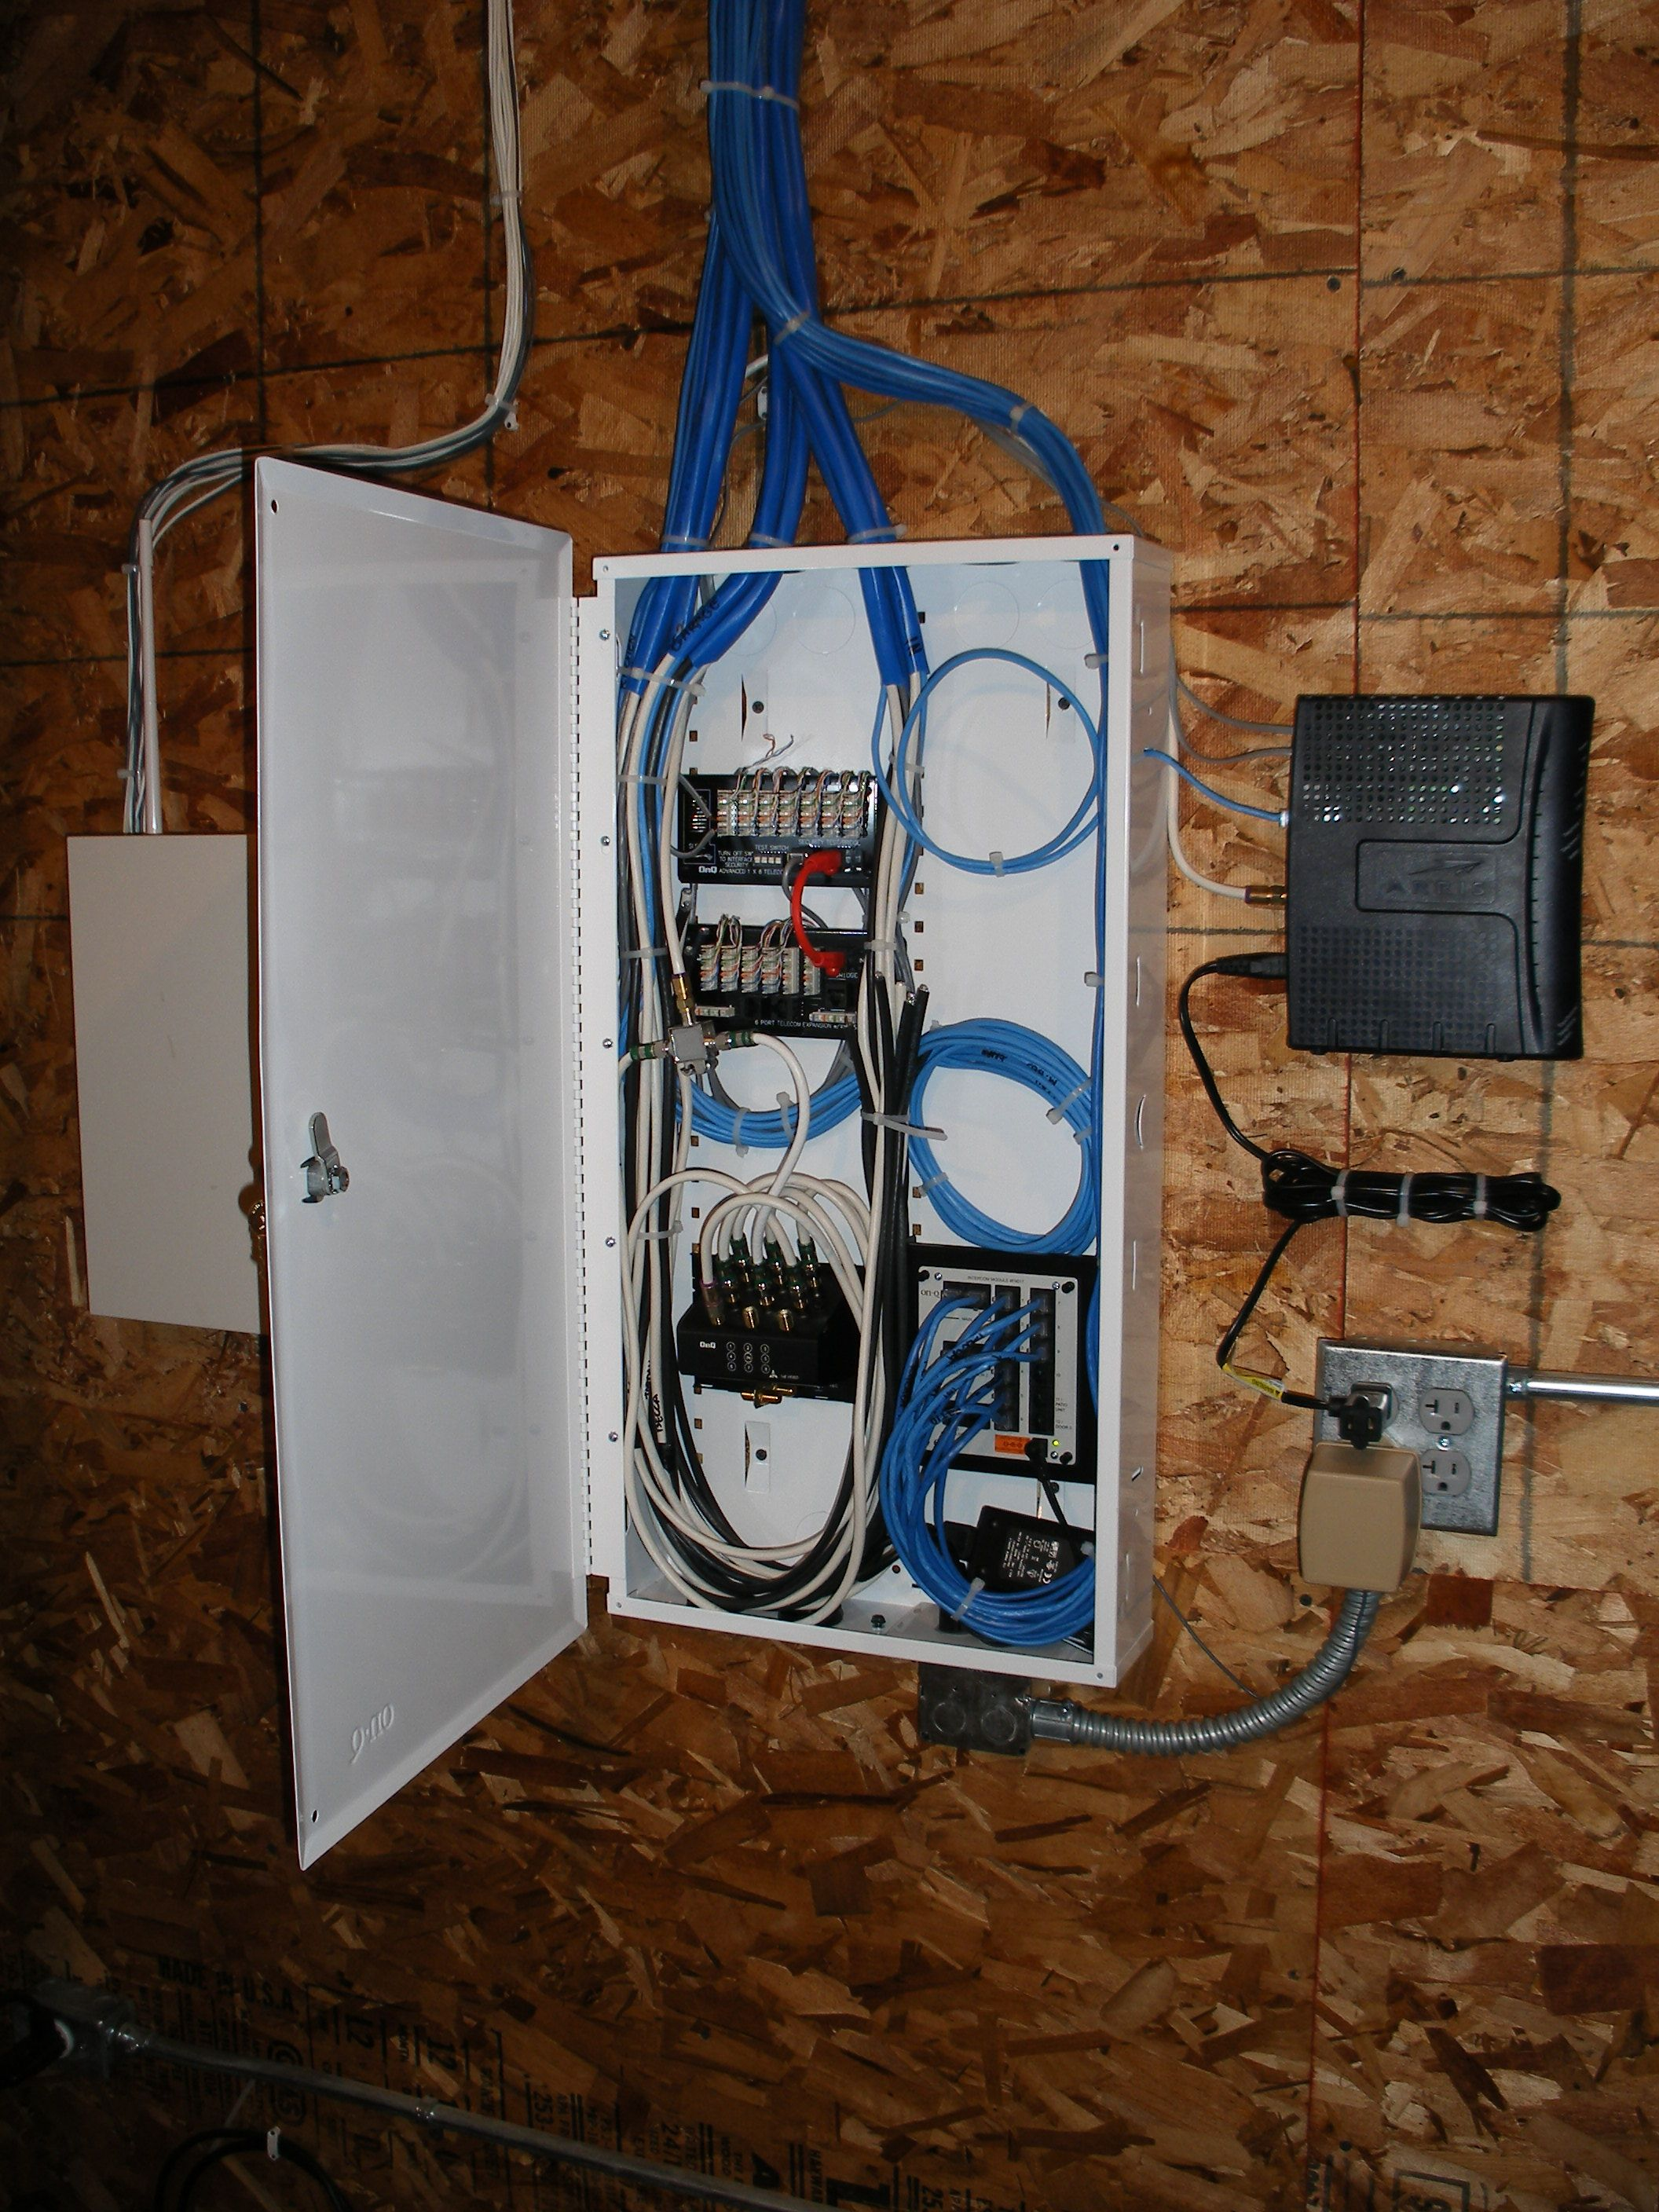 hight resolution of whole house structured wiring networking set ups cabinets panels picture